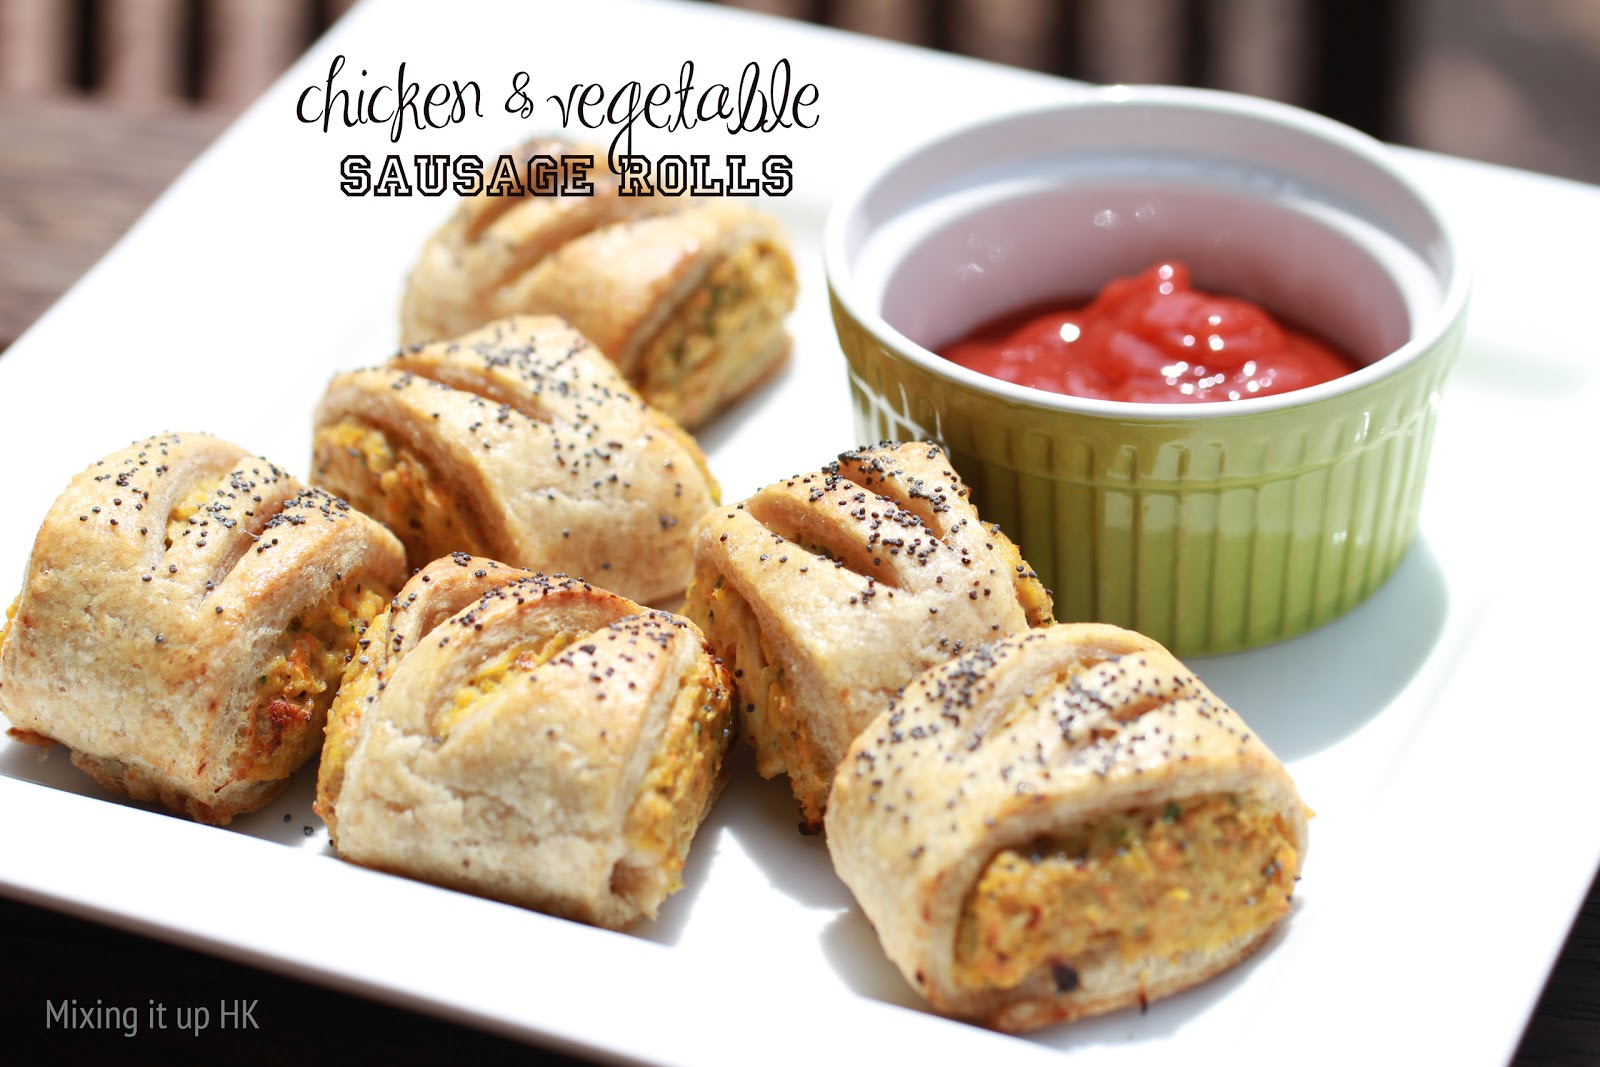 ... it up in HK: Chicken & vegetable sausage rolls with spelt pastry